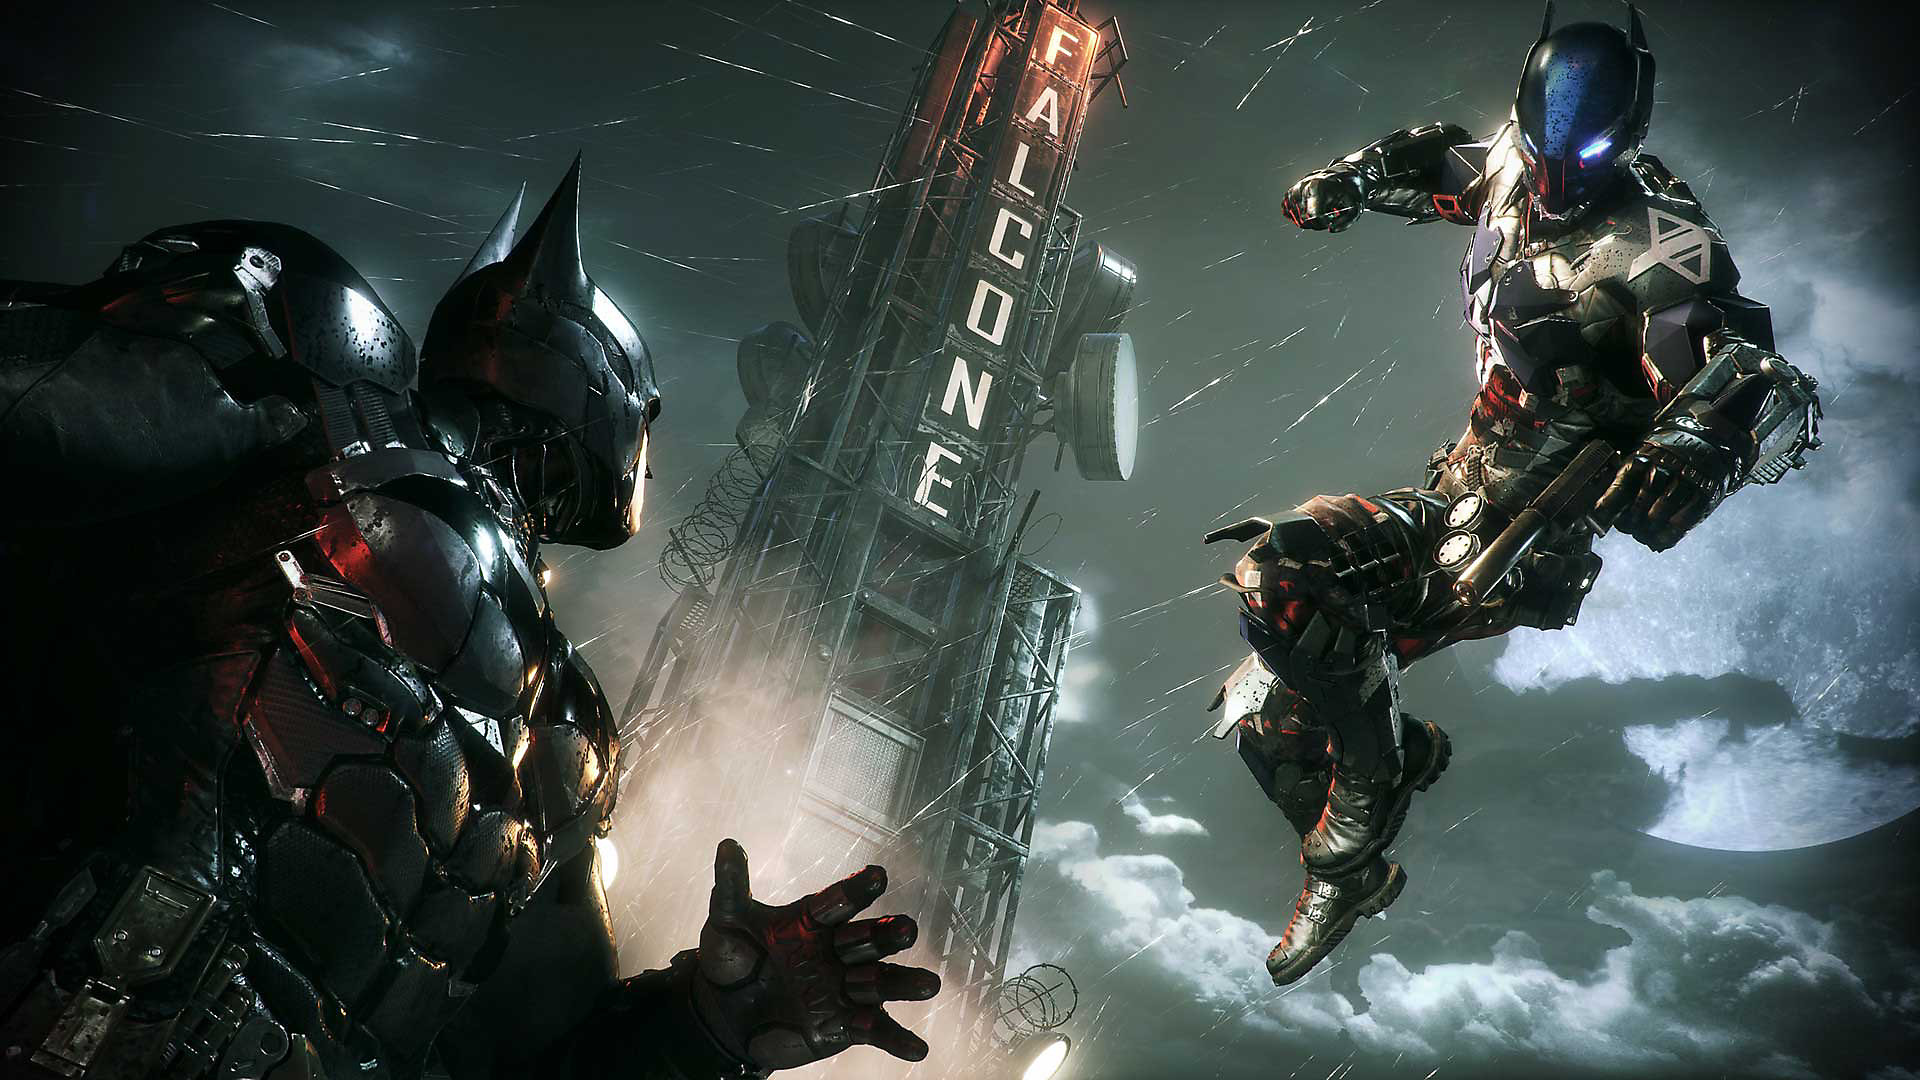 Batman versus The Arkham Knight